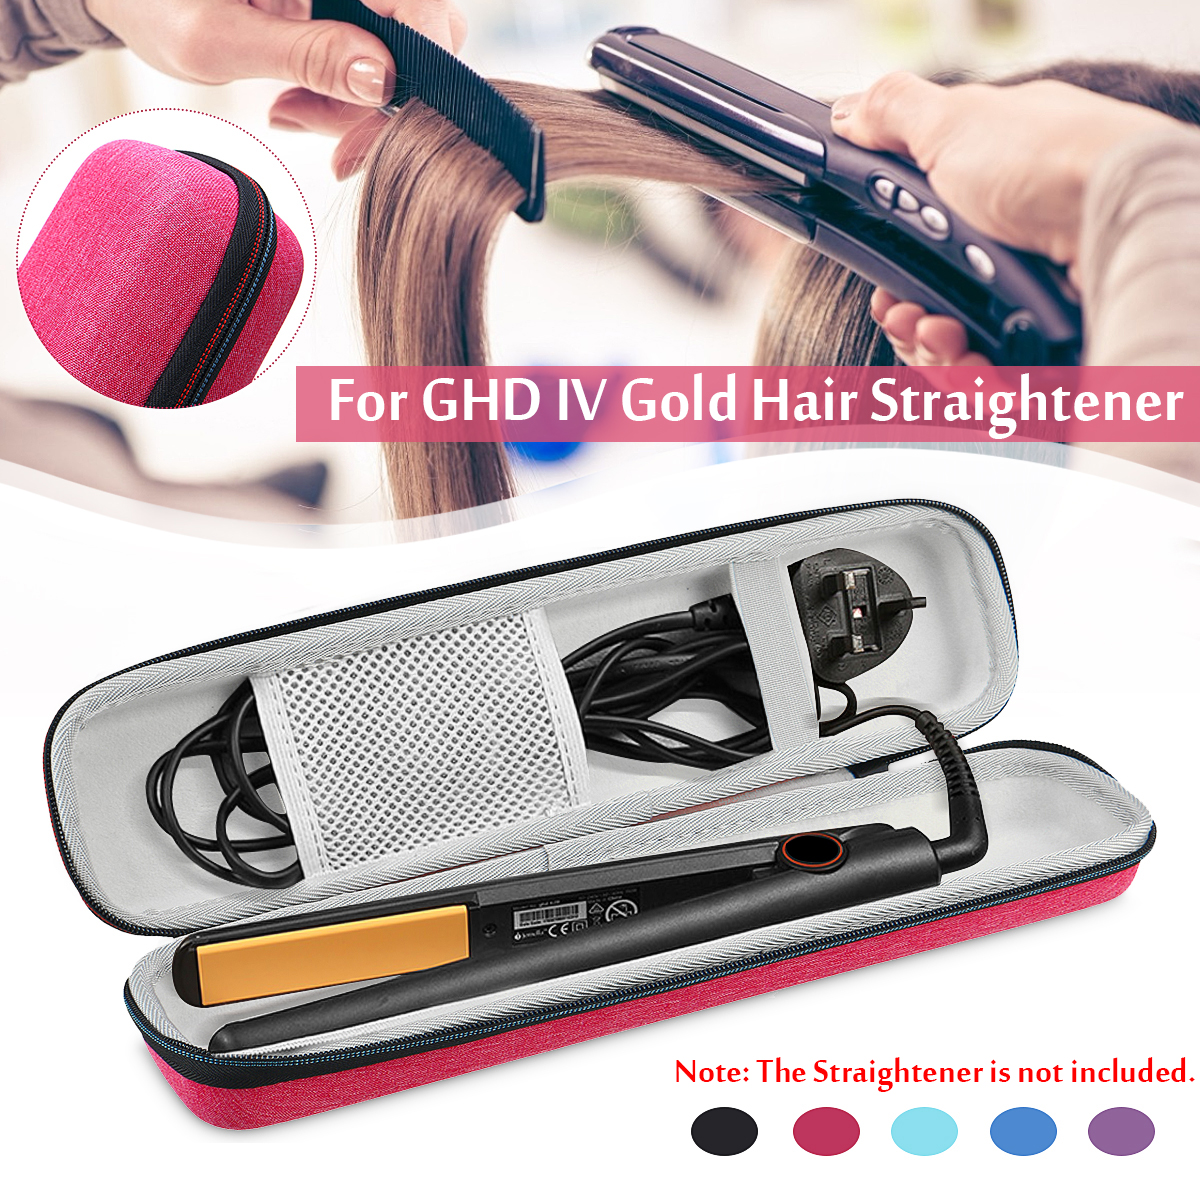 Protective Hair Straightener Case For Braun ST780 / GHD IV Gold Classic-Stying Curler Box Semi-waterproof Carry Bag(only Case)